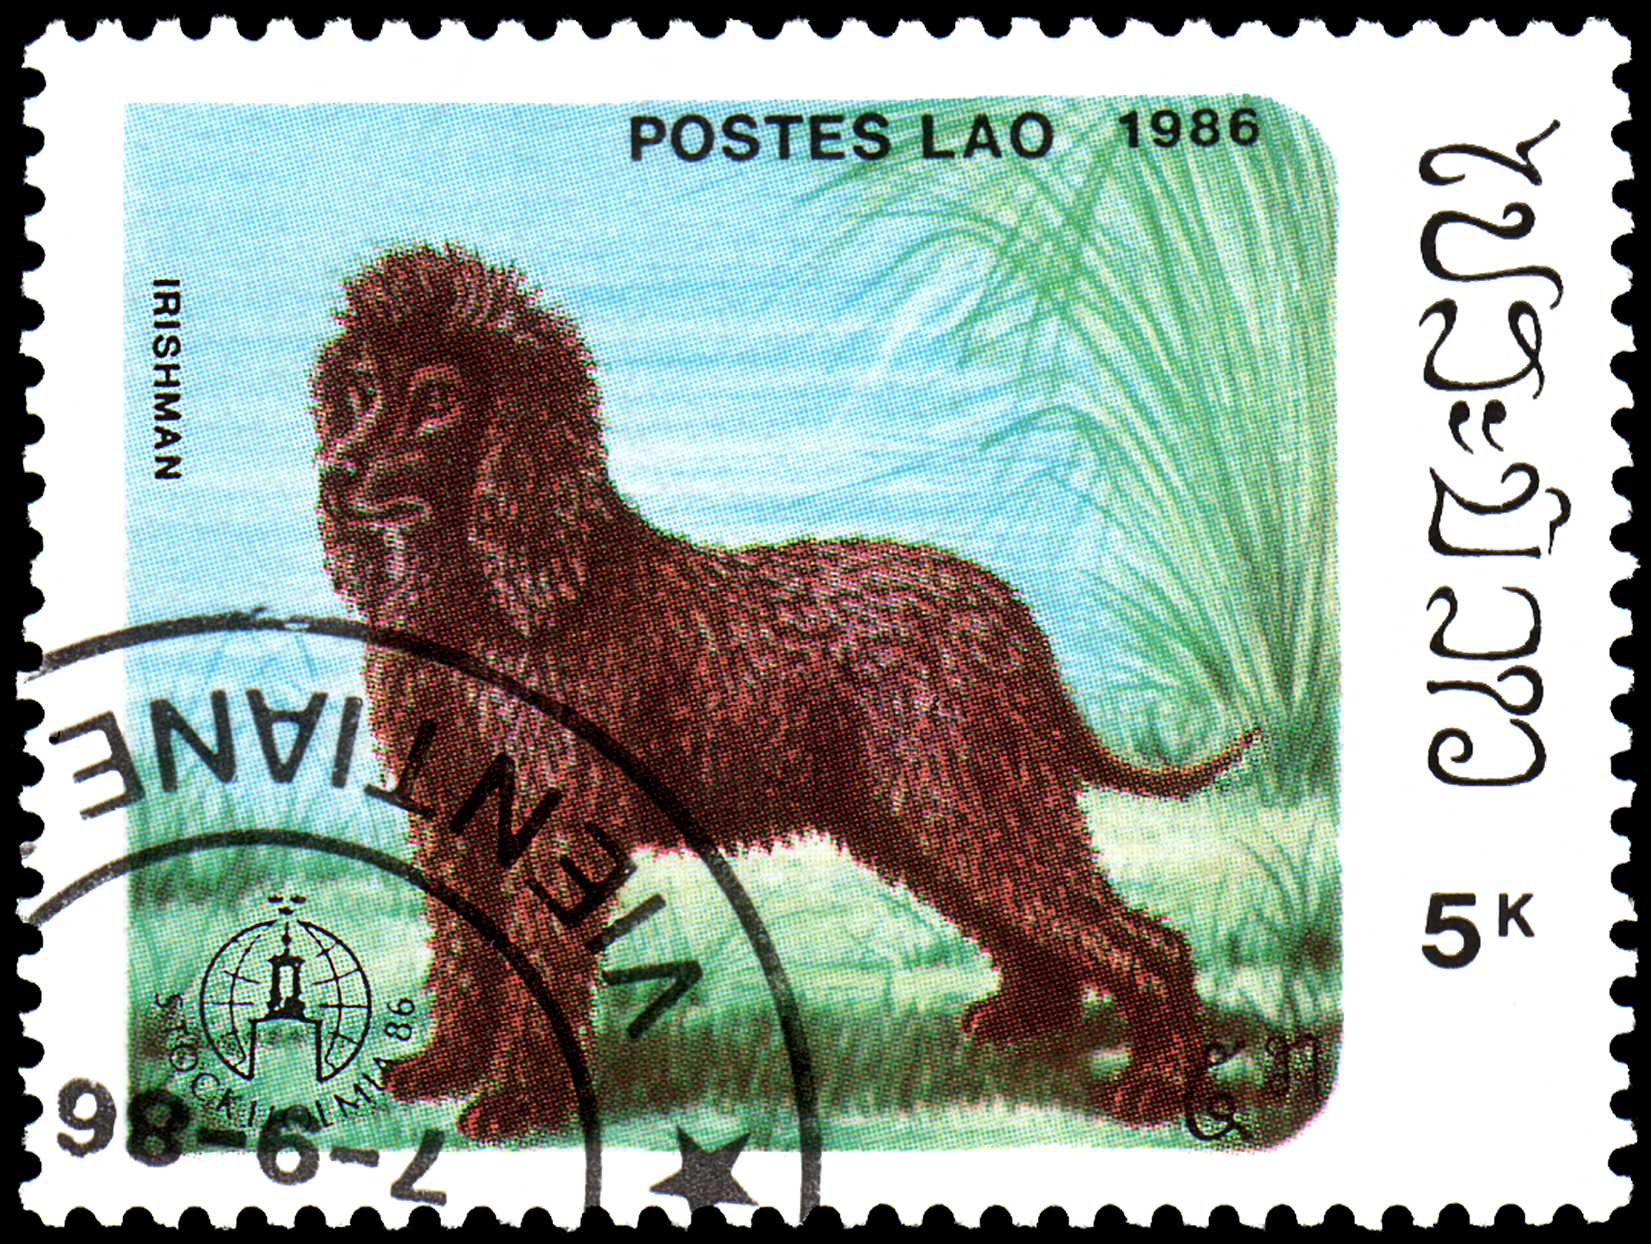 drawing of an Irish water spaniel on a vintage postage stamp